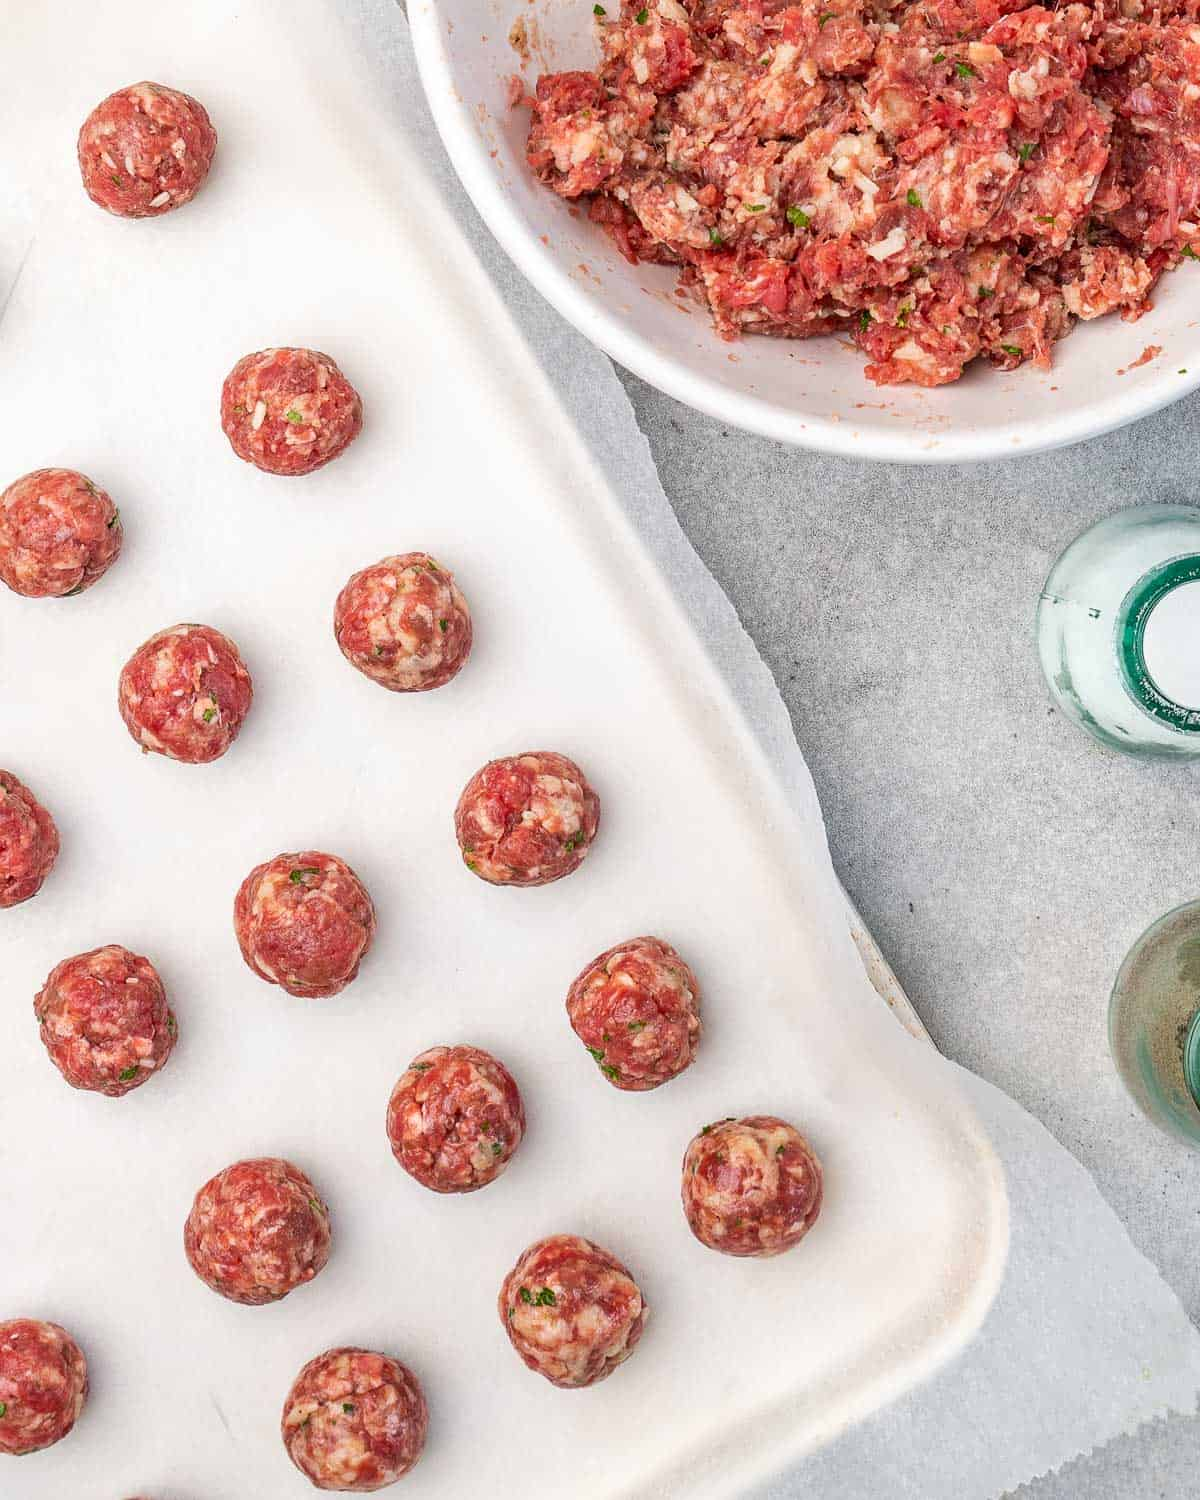 Meatballs formed on sheet pan with more meat in bowl.